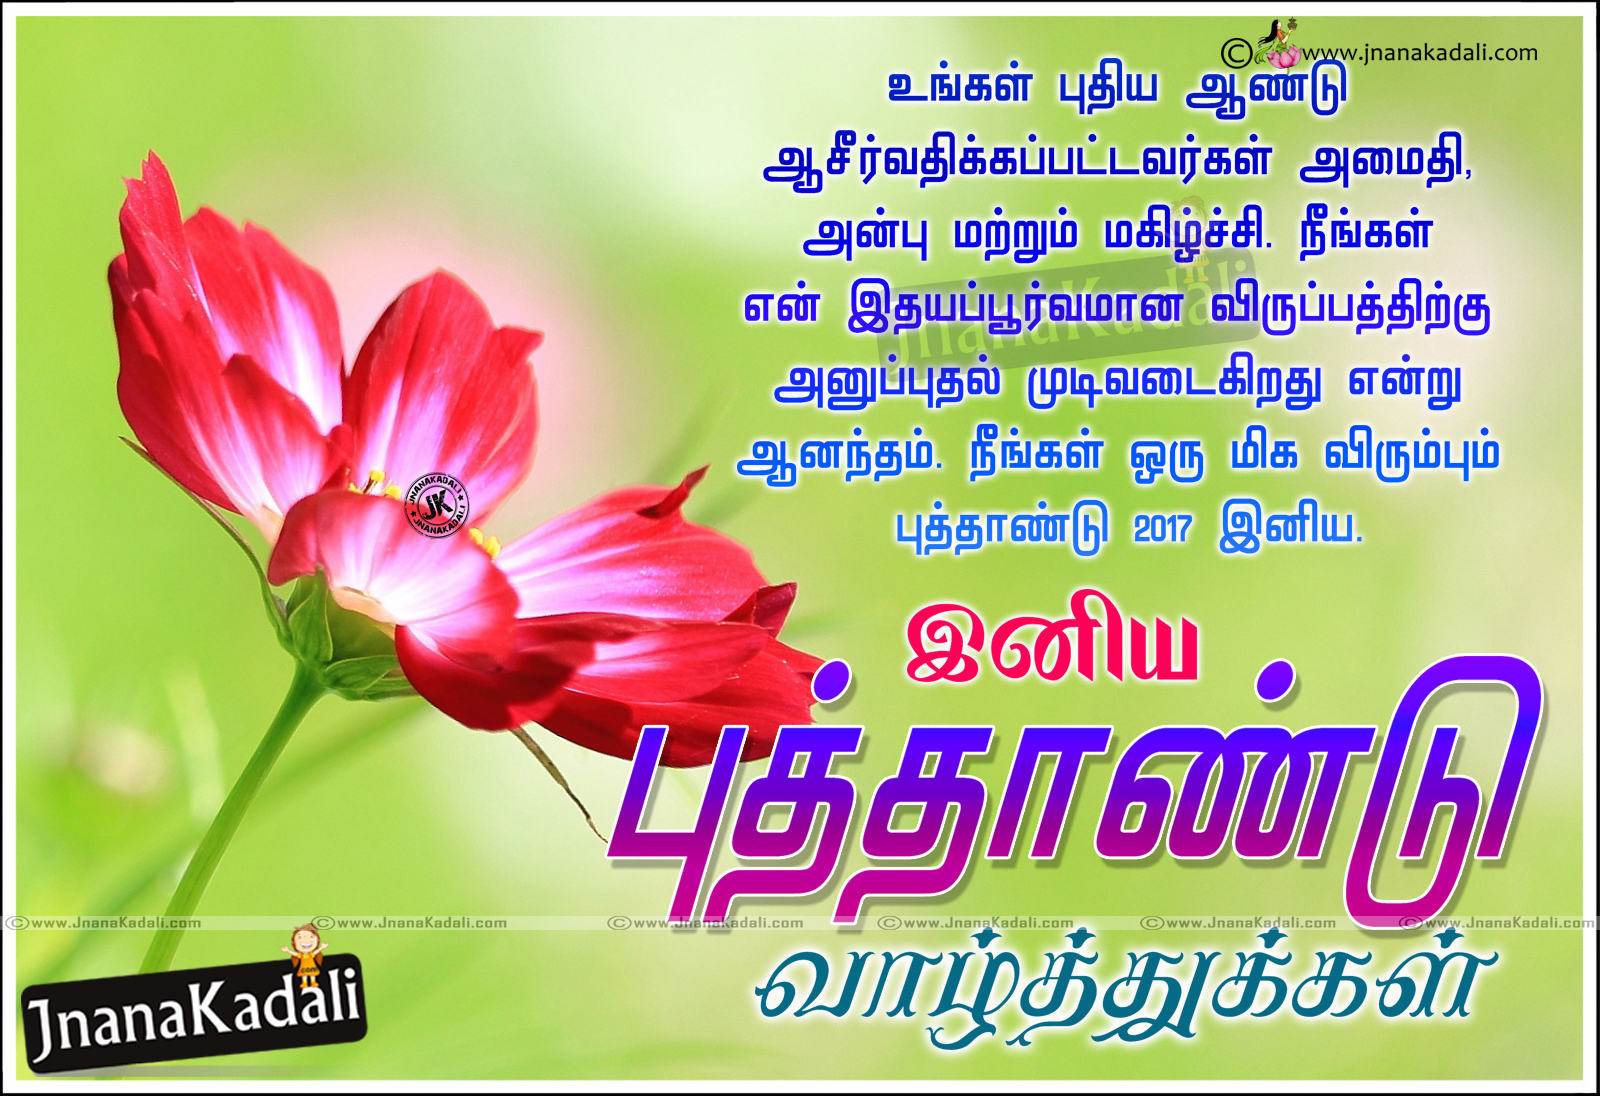 Tamil Greetings On New Year, Tamil Latest New Year - Happy New Year 2018 Wishes In Tamil - HD Wallpaper